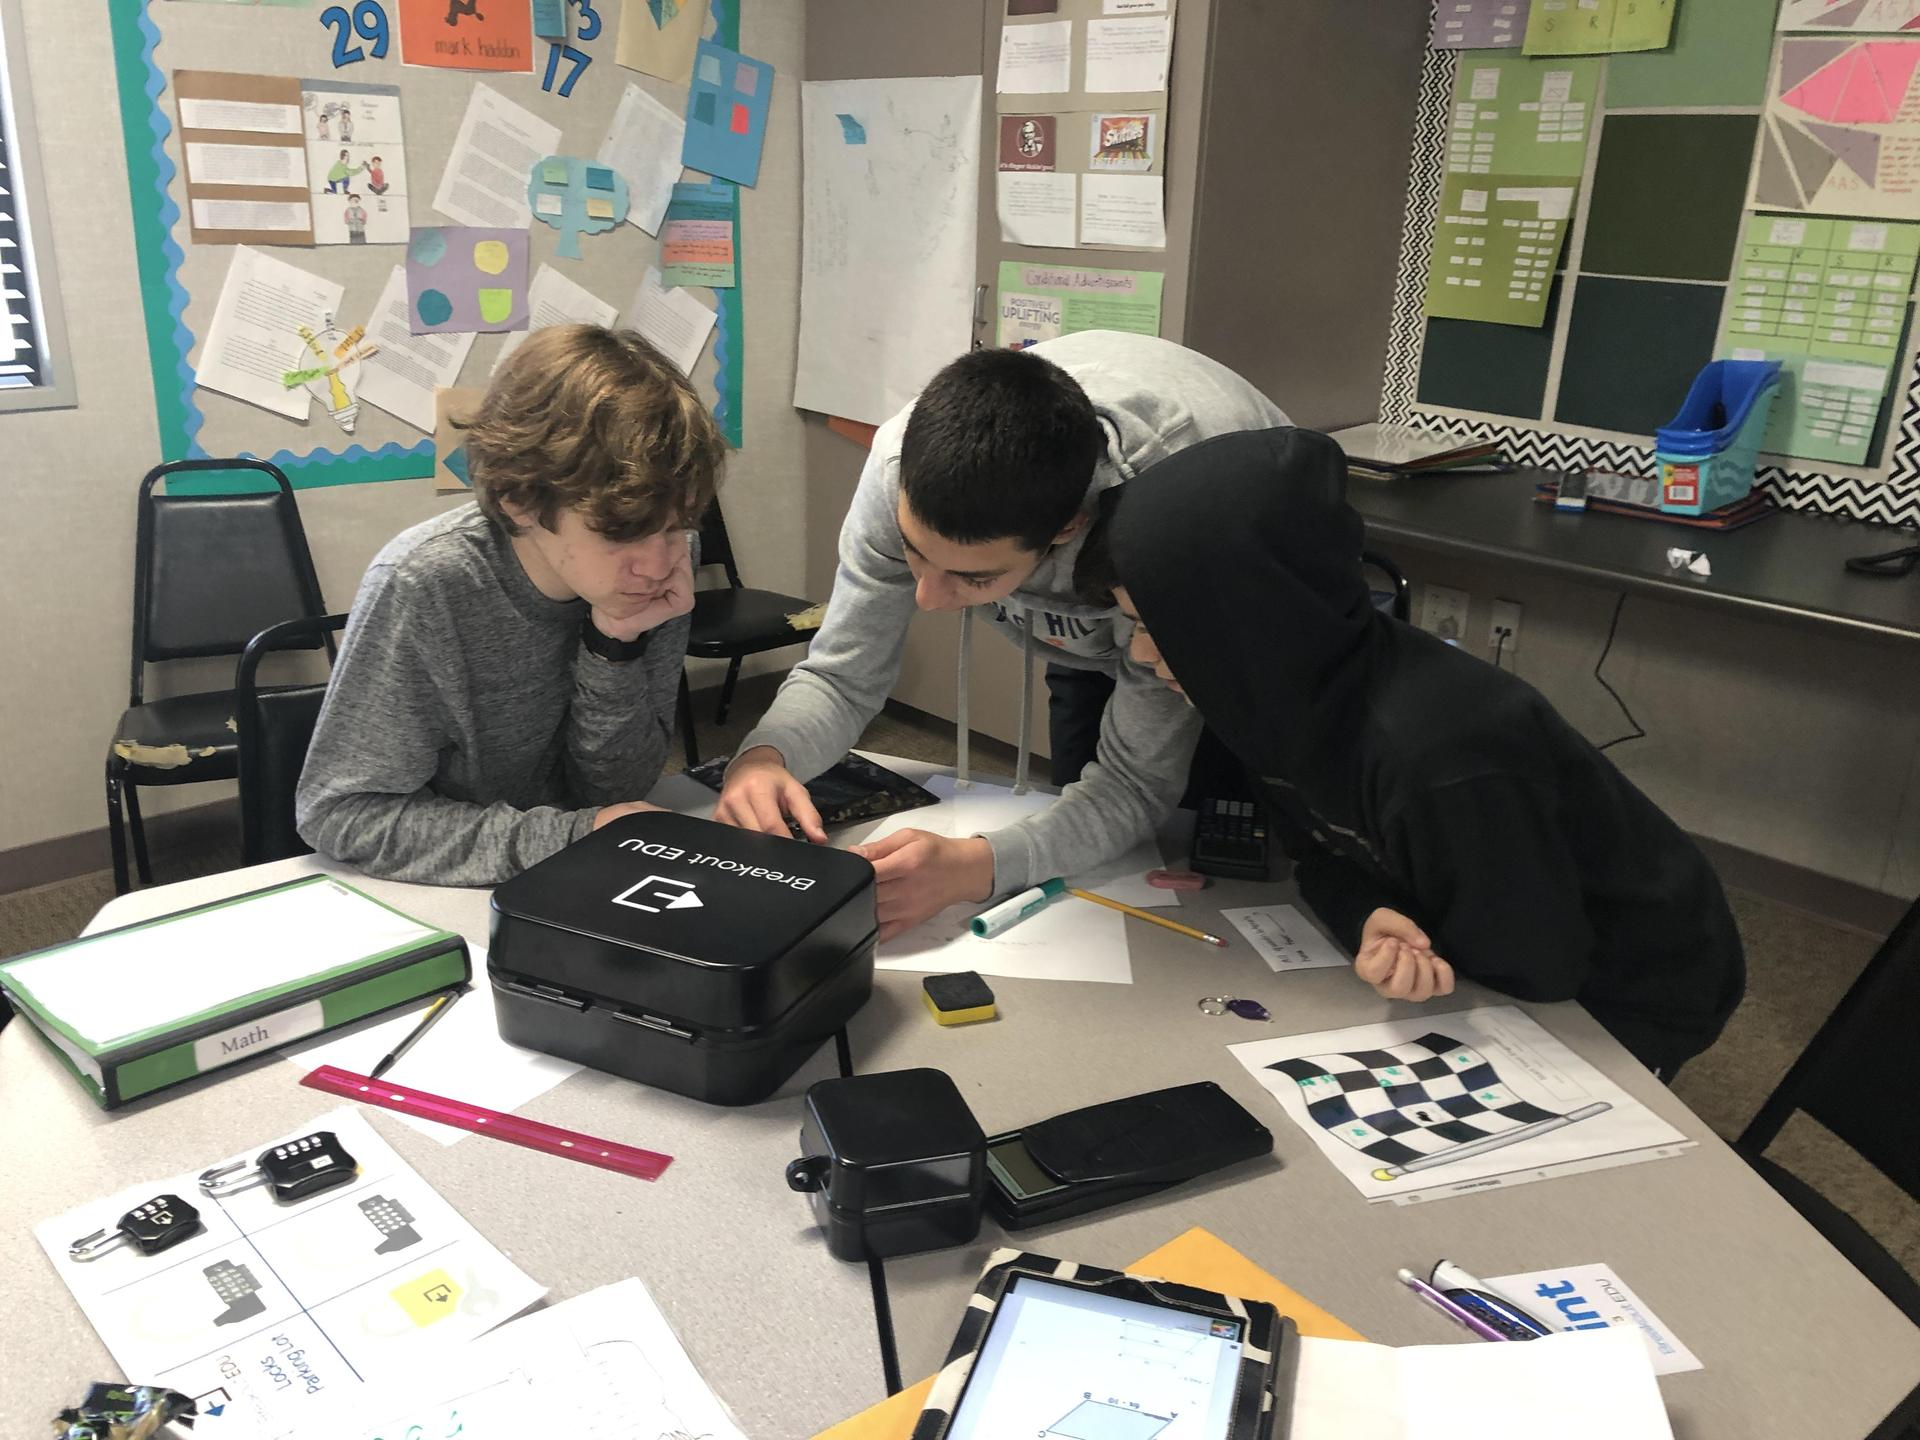 Math students working on a 'Breakout Box' activity that teaches through puzzle solving.